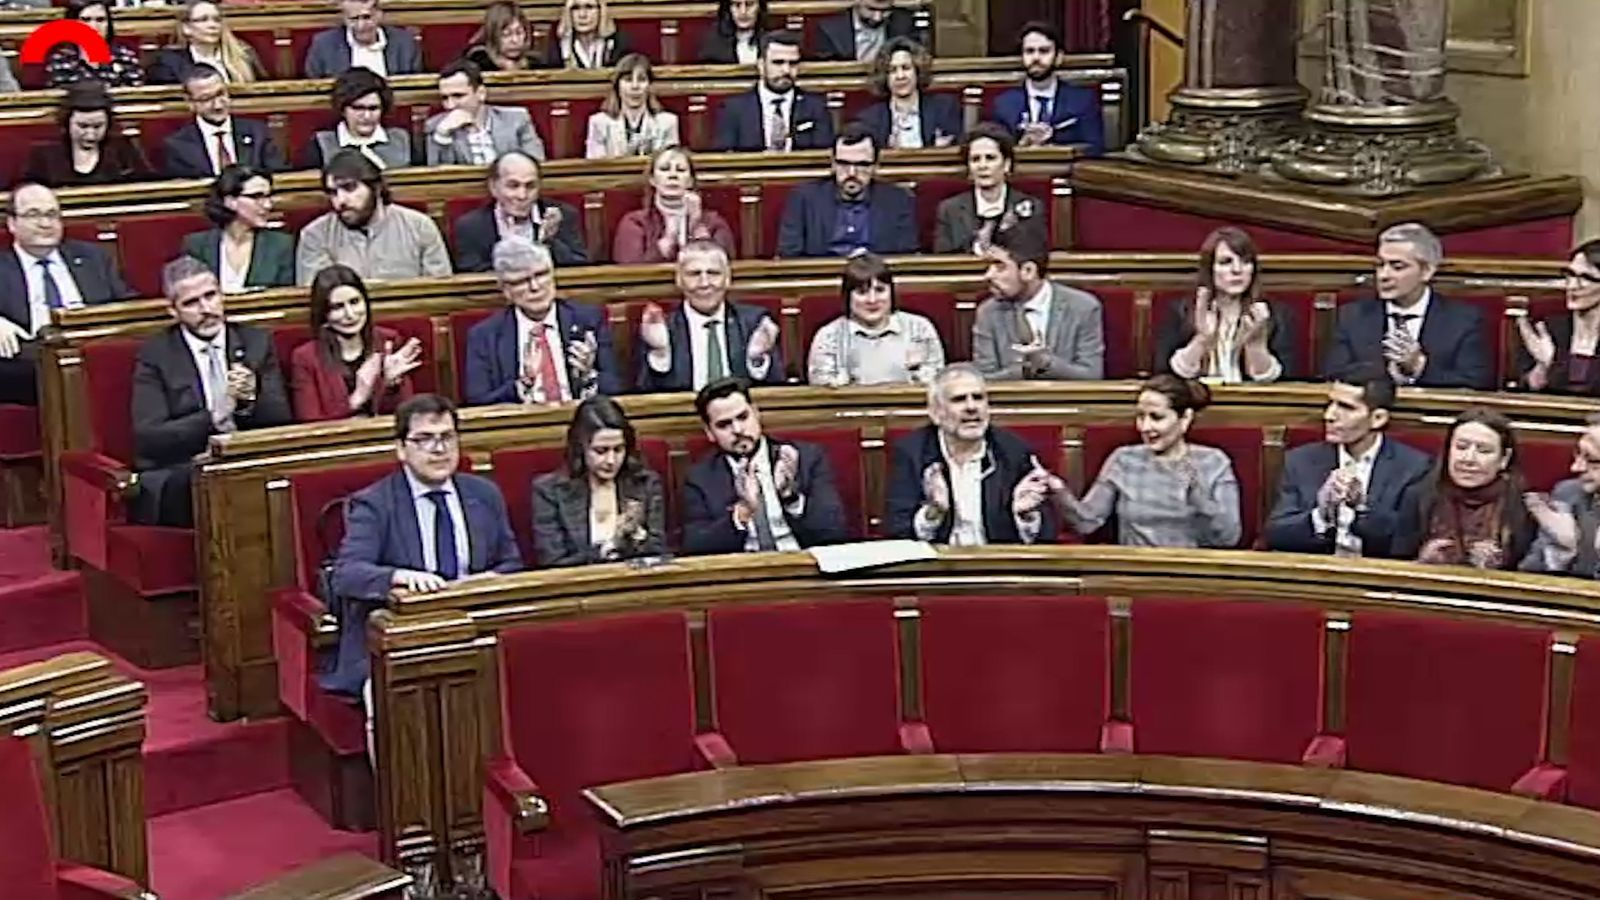 Sis moments de Ciutadans al Parlament